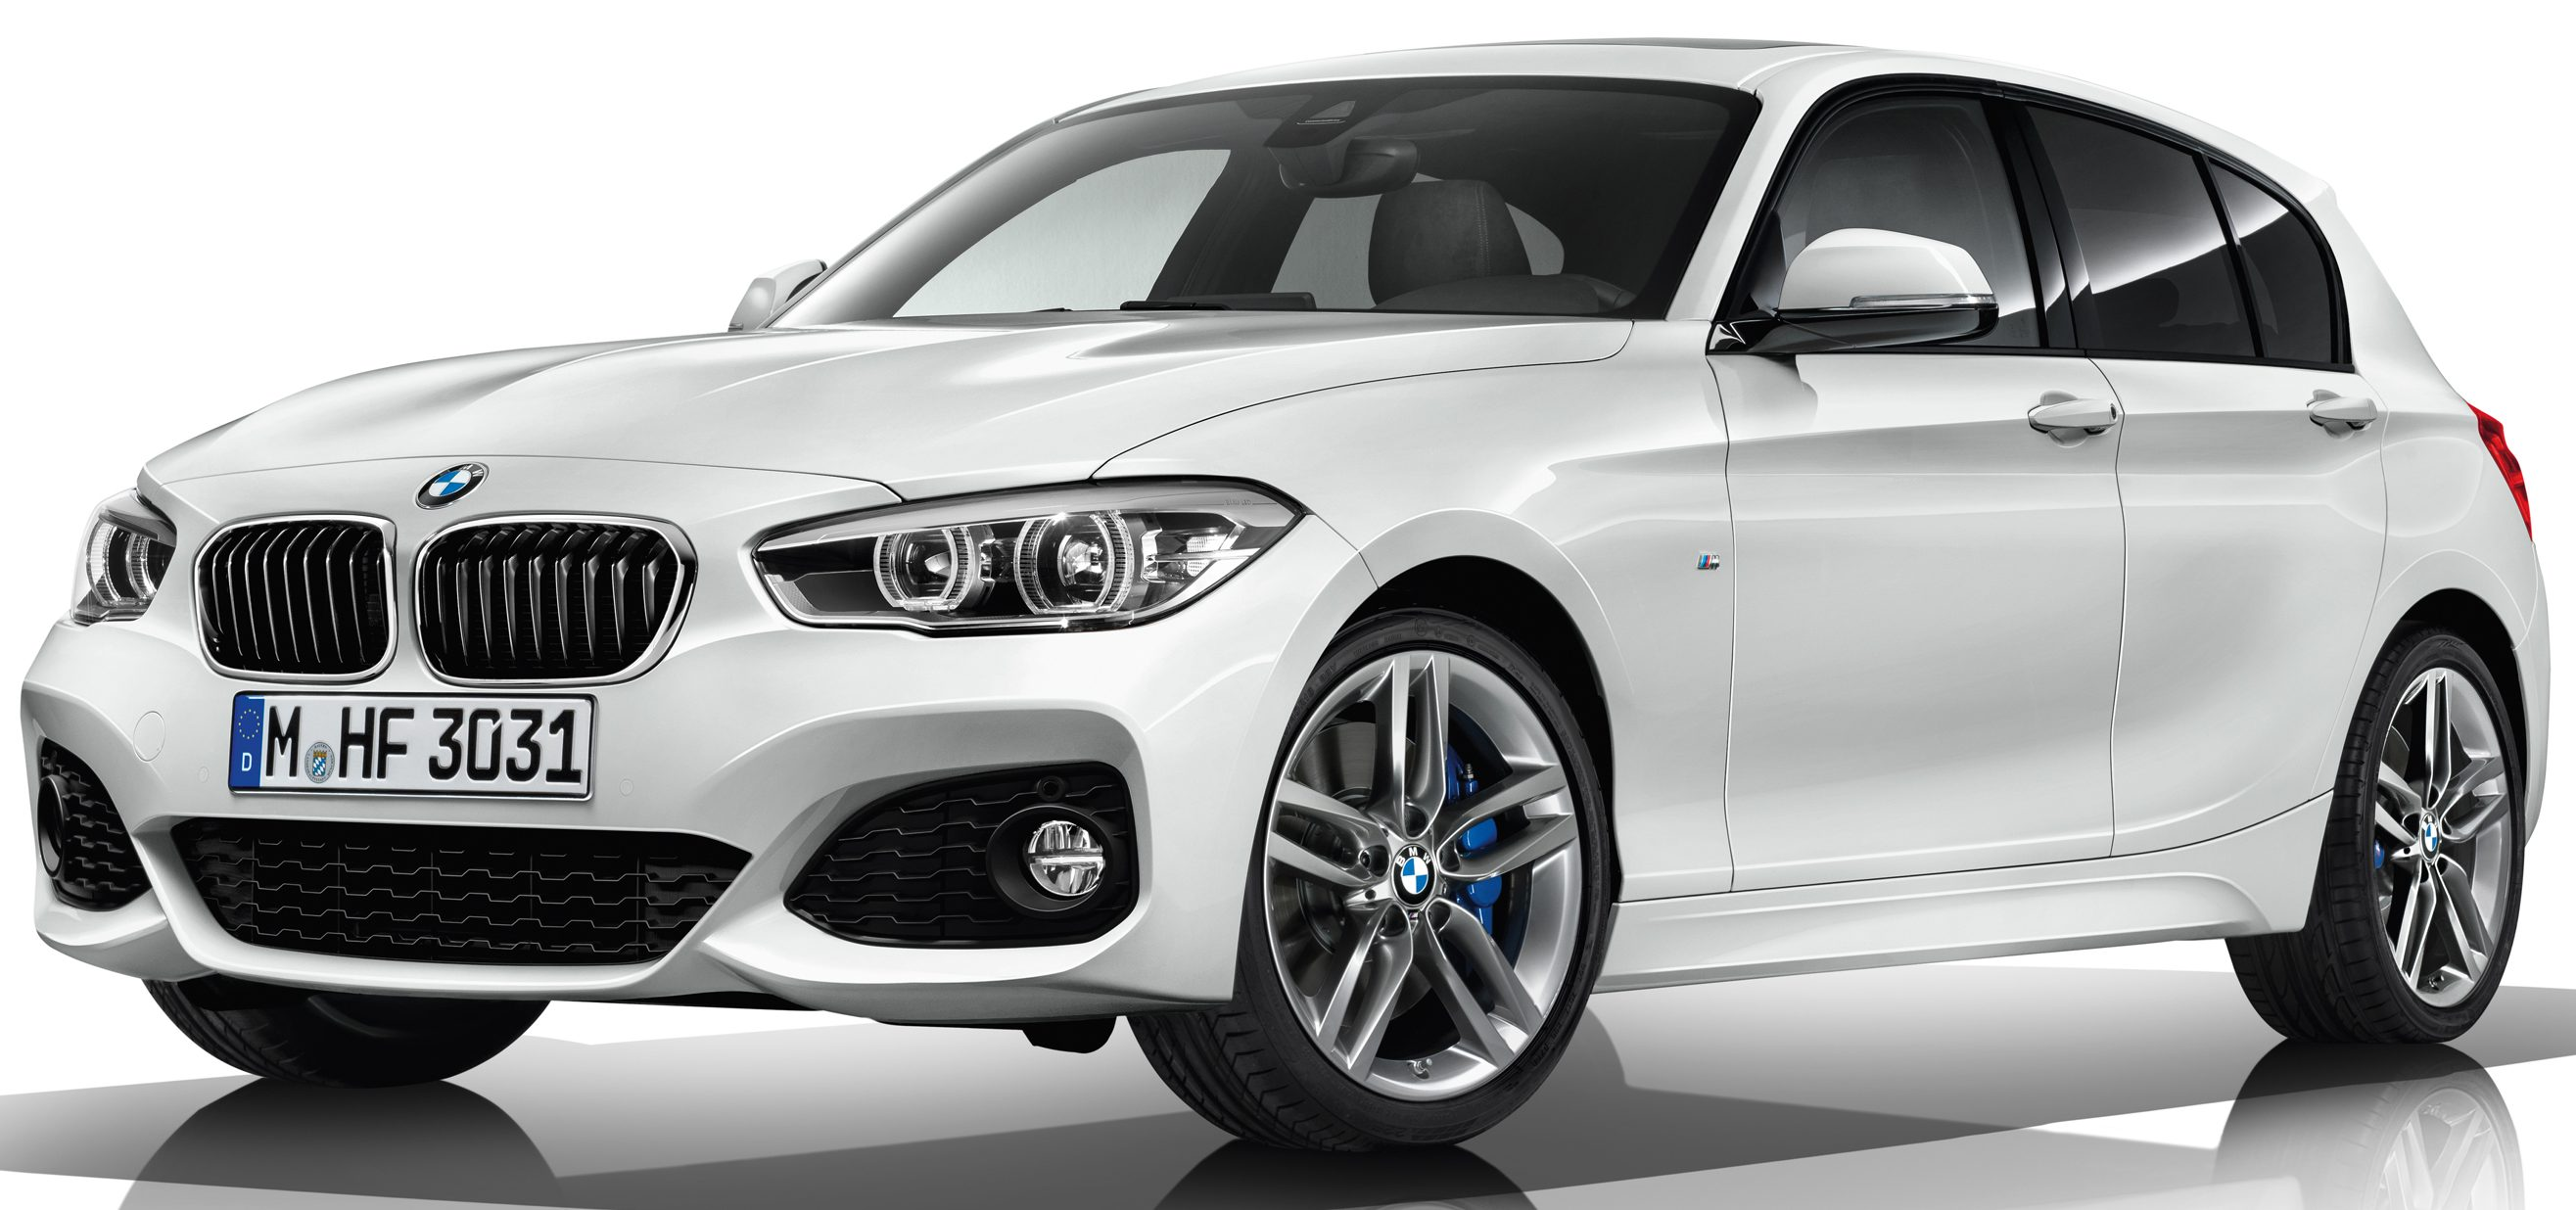 Bmw 1 Series And 2 Series Get More Powerful Engines For